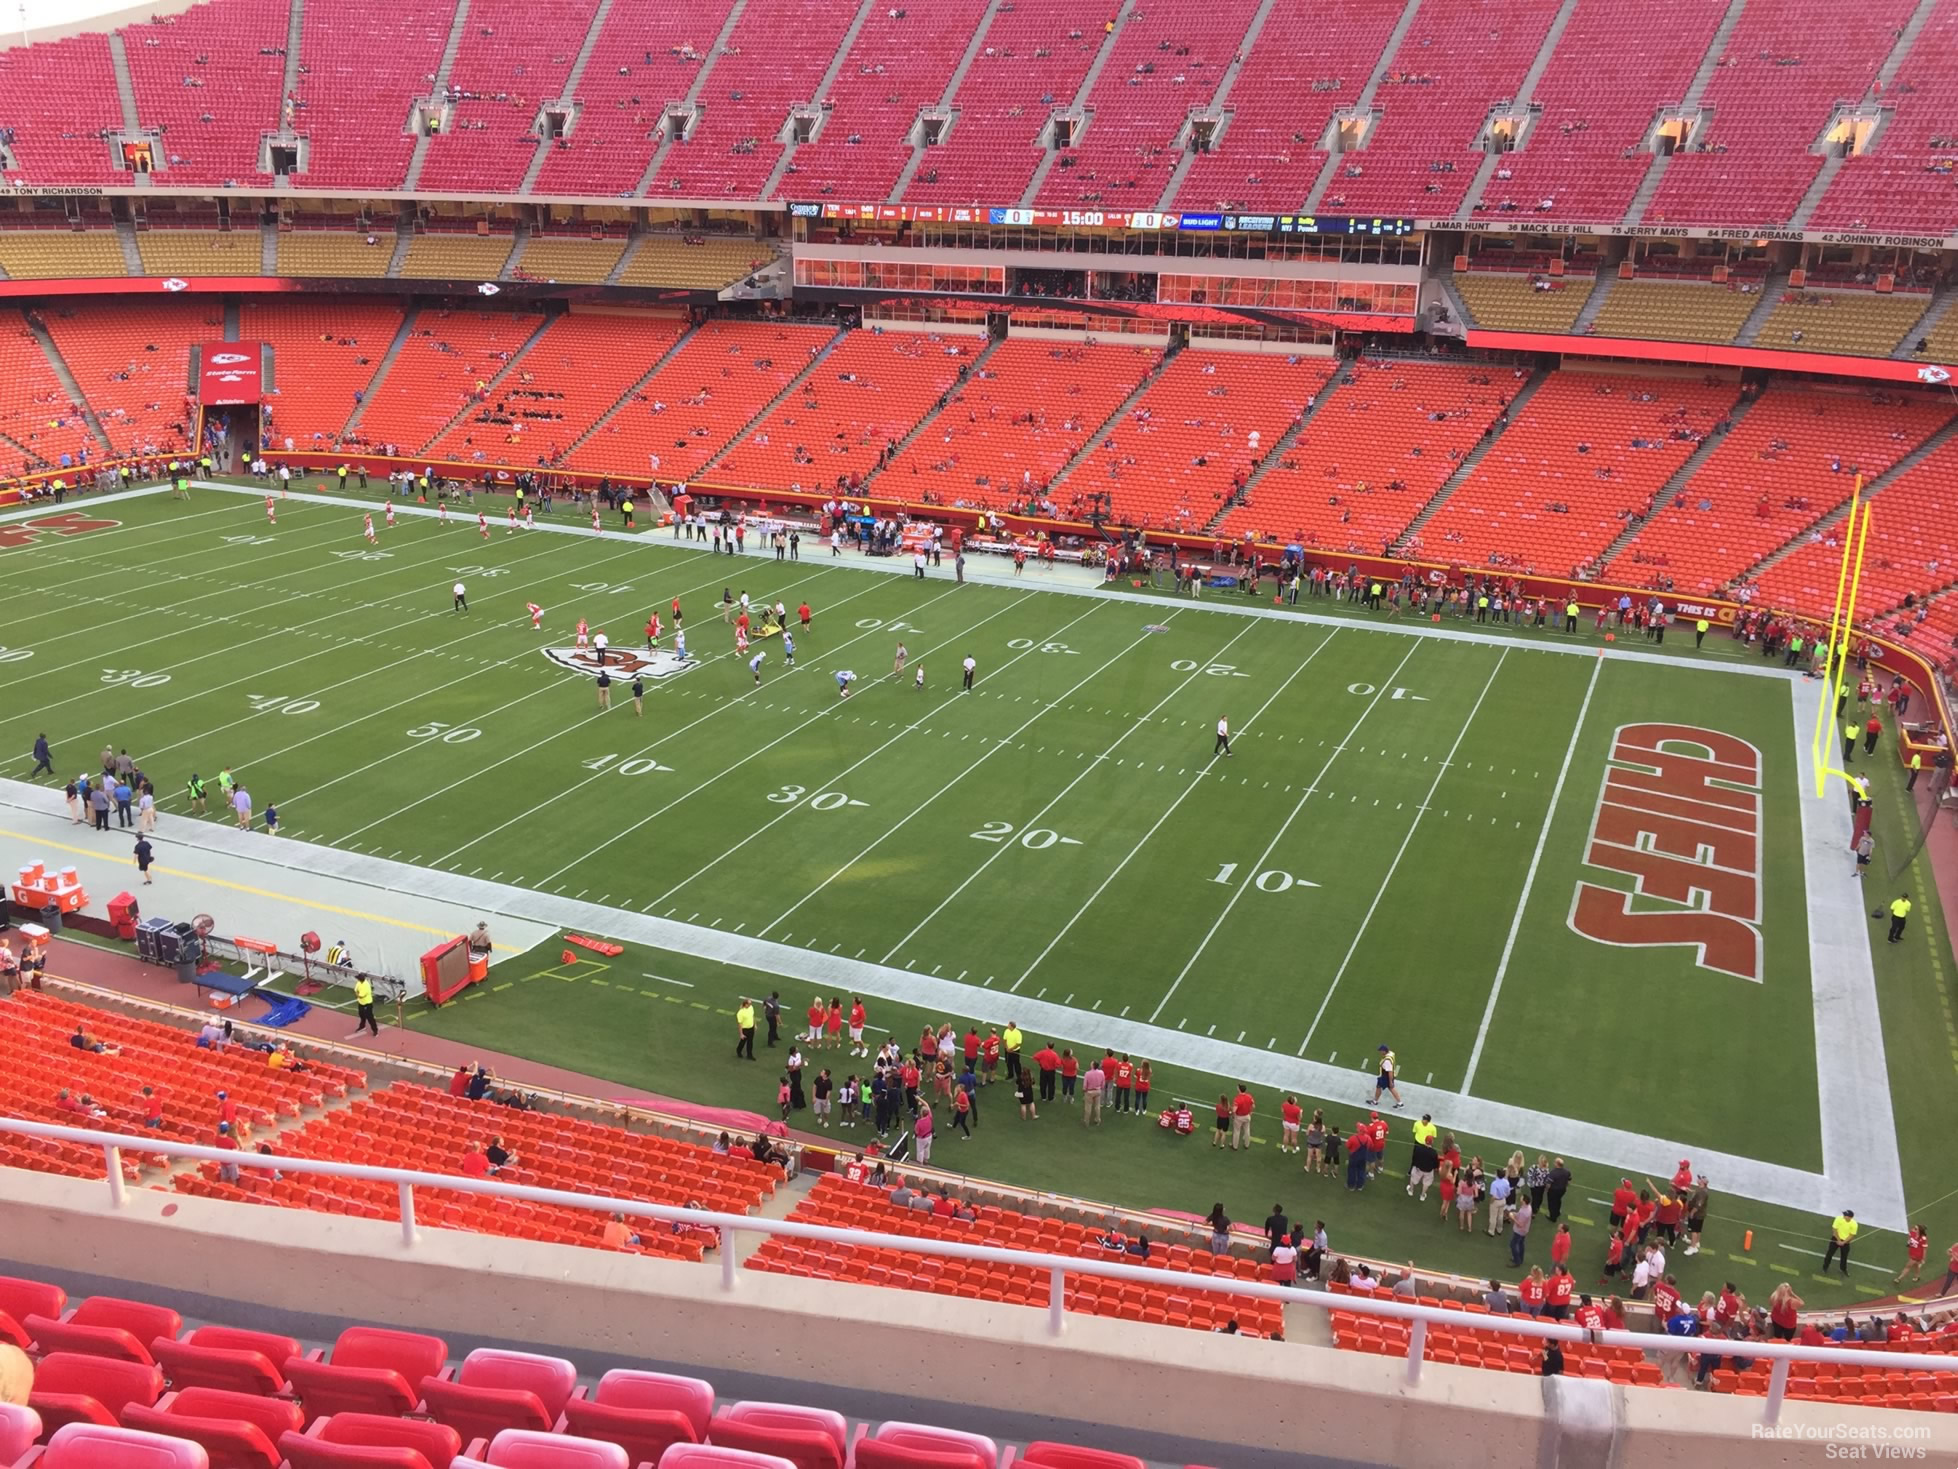 Seat View for Arrowhead Stadium Section 343, Row 7